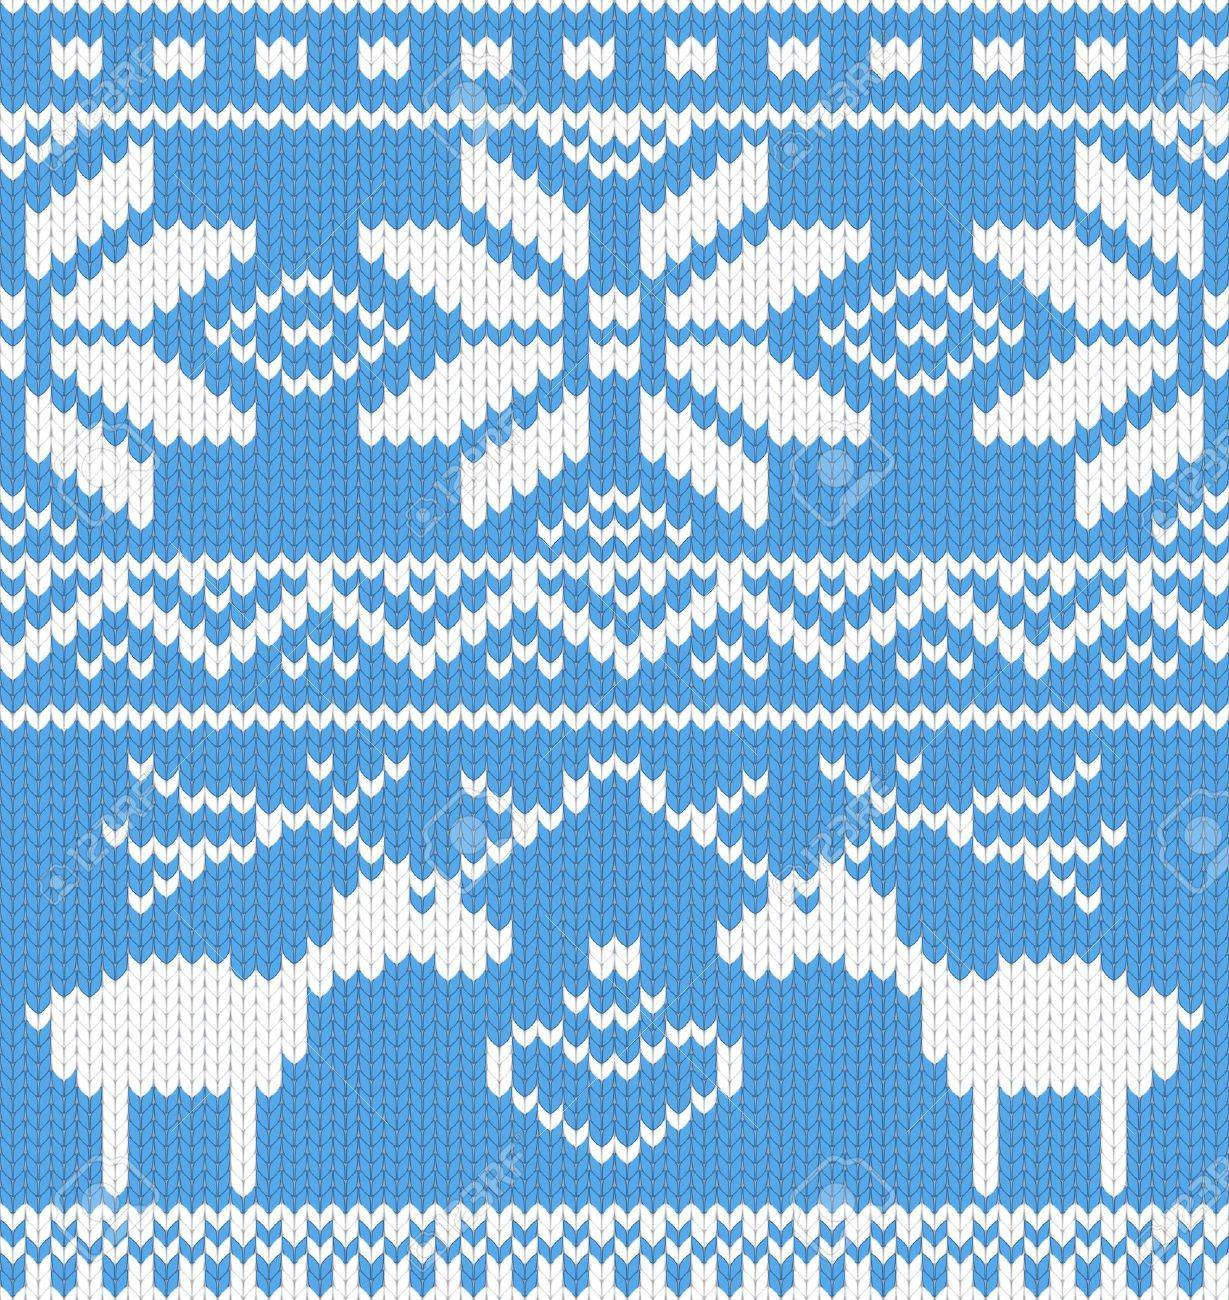 Seamless knitted pattern with deer. Vector illustration. Stock Vector - 11662222